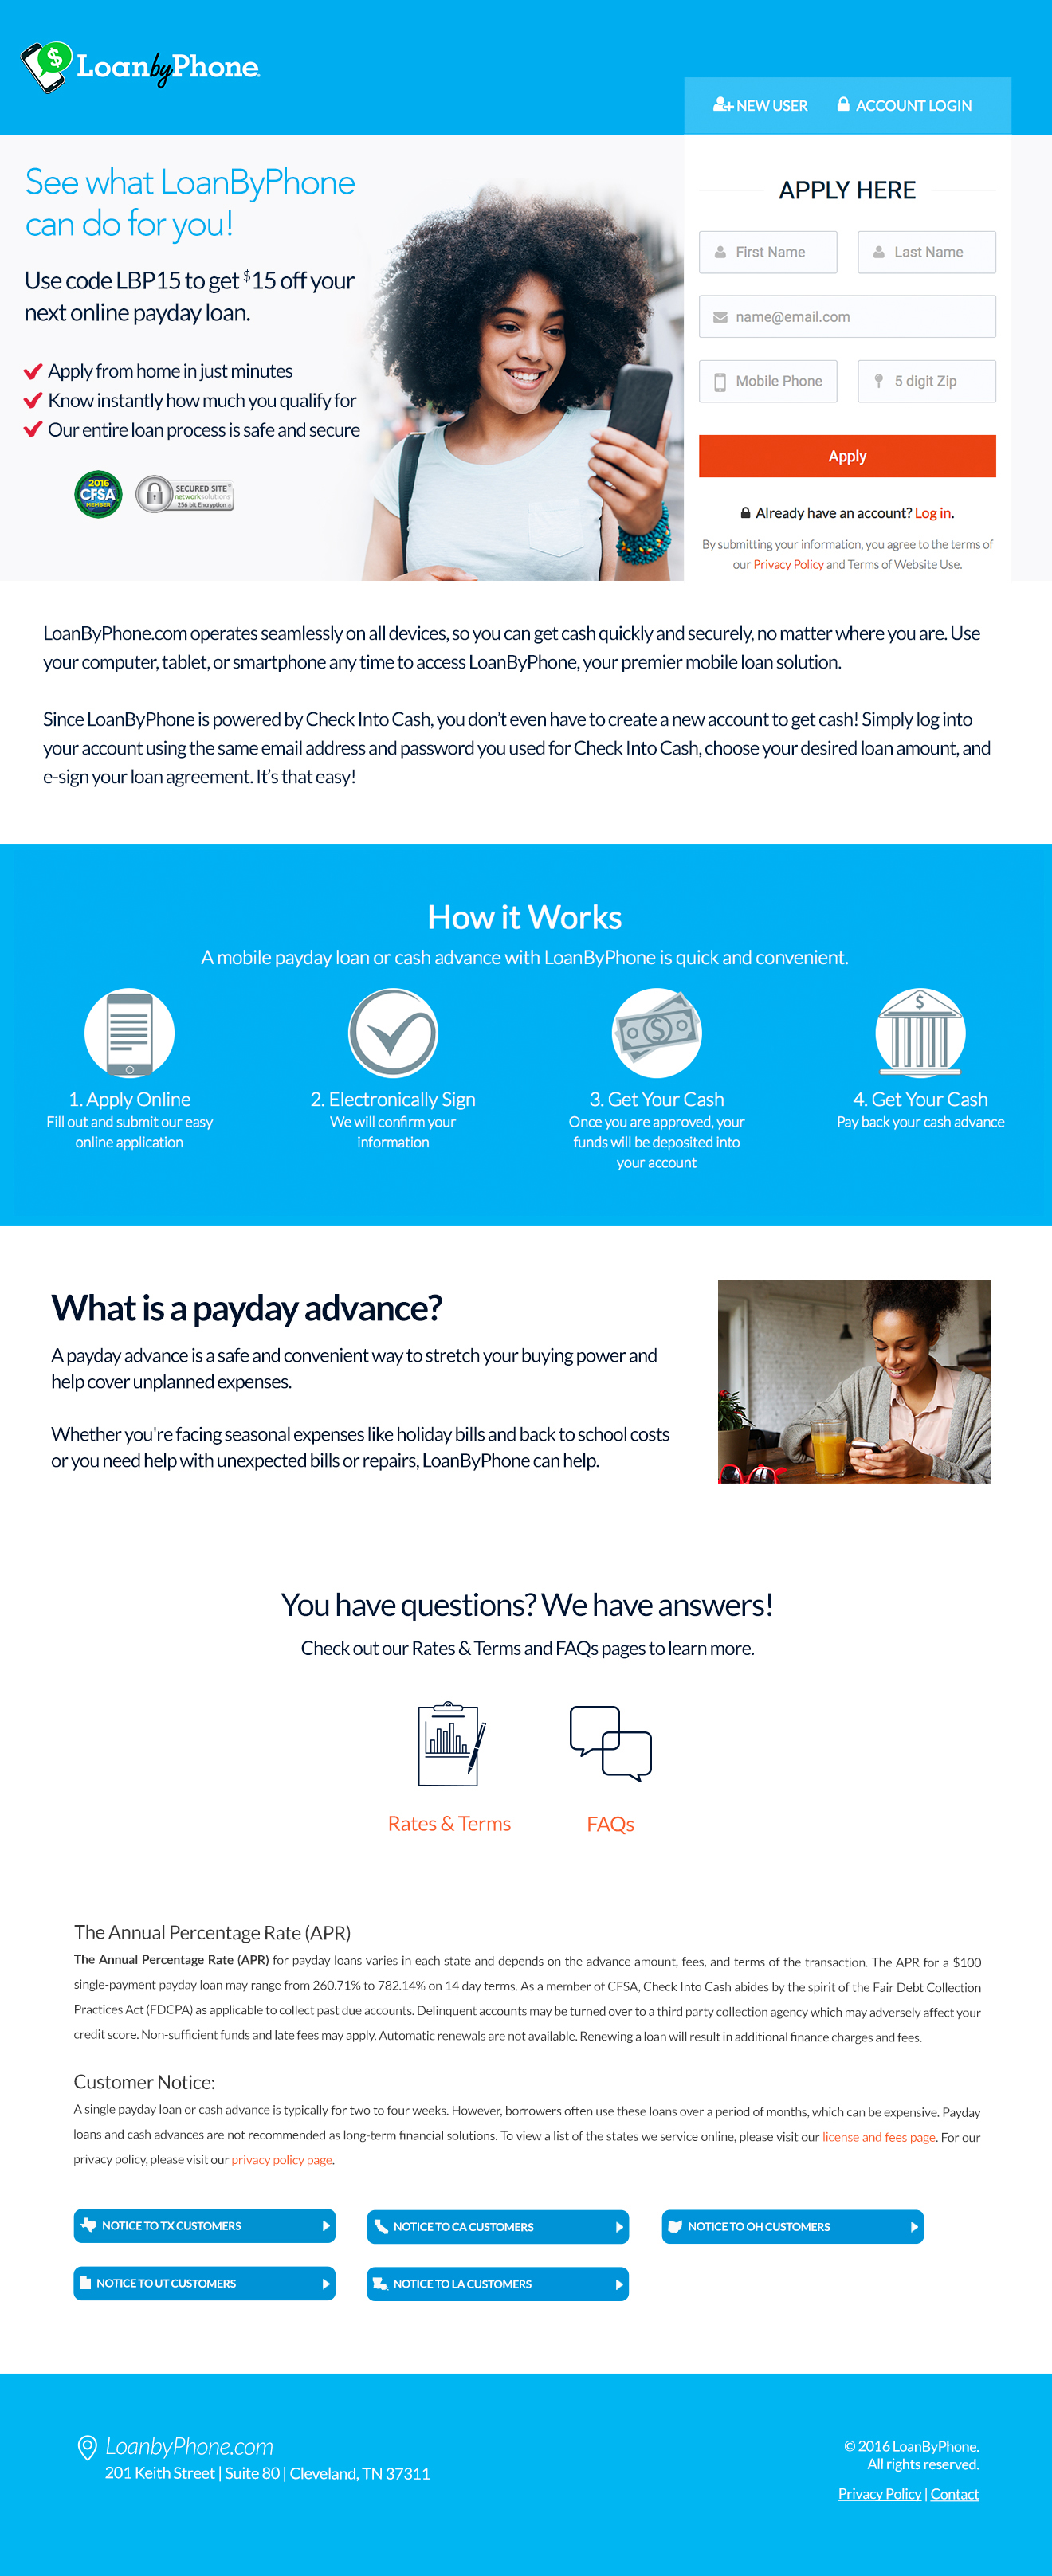 Landing Page for Loan by Phone brand launch